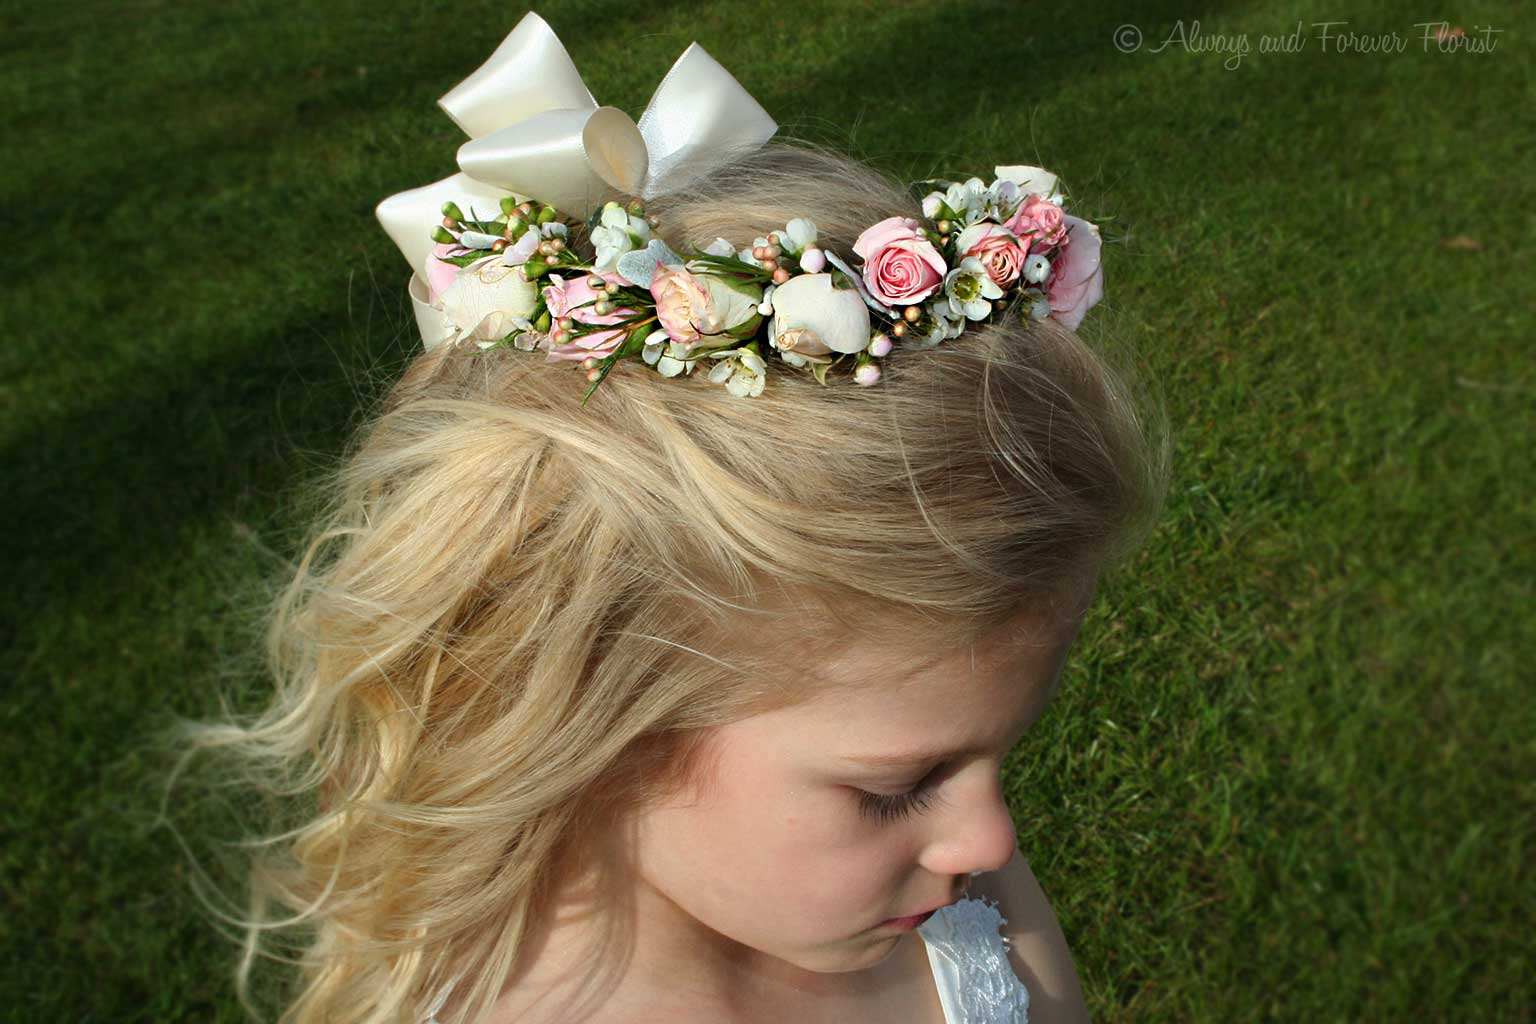 Matching hair adornment for flower girl